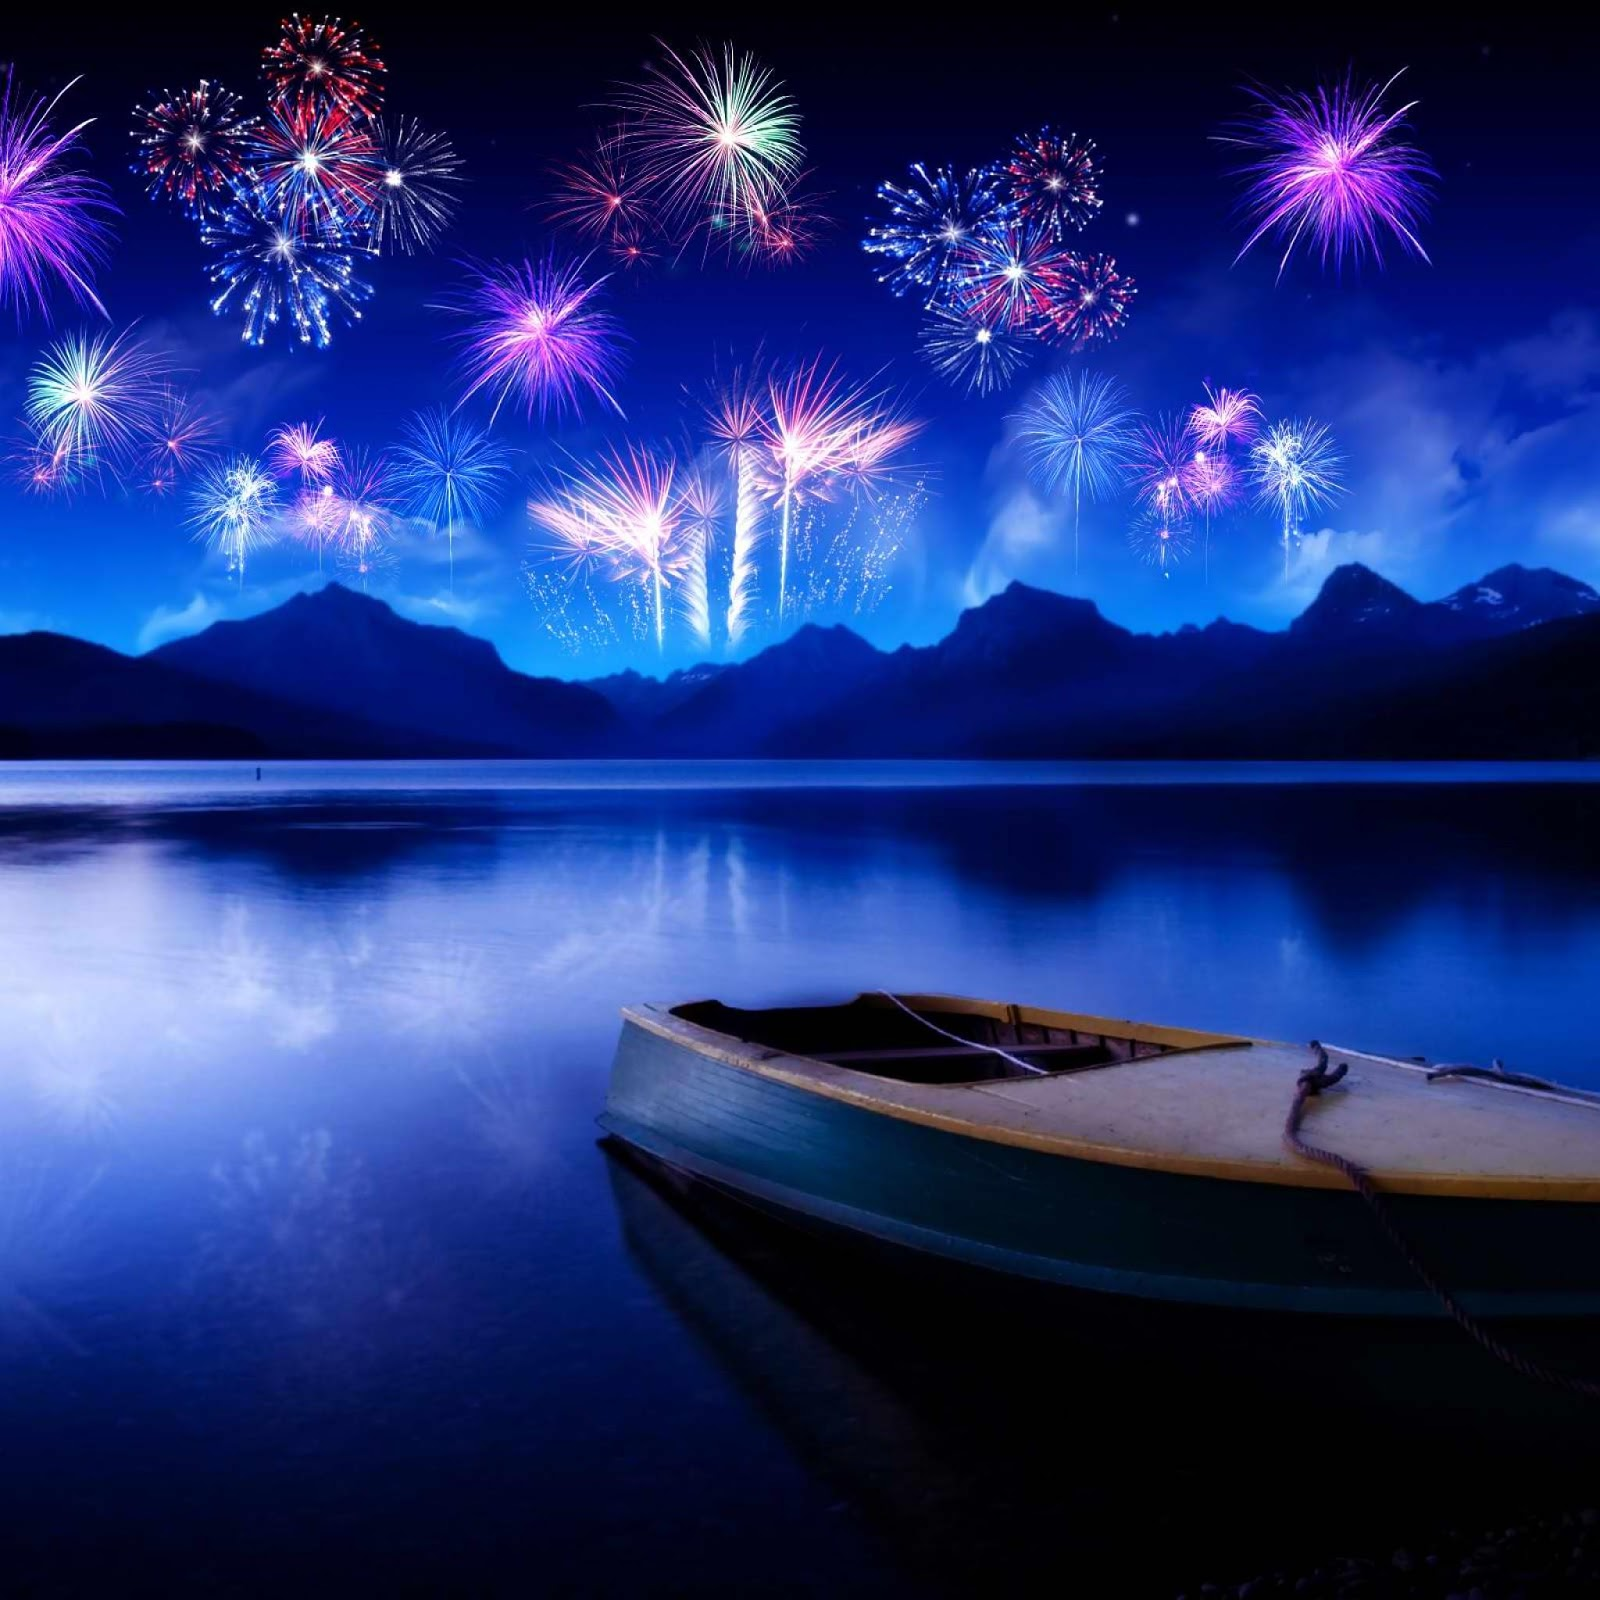 ipad wallpapers free download new year 2013 ipad wallpapers 2048x2048